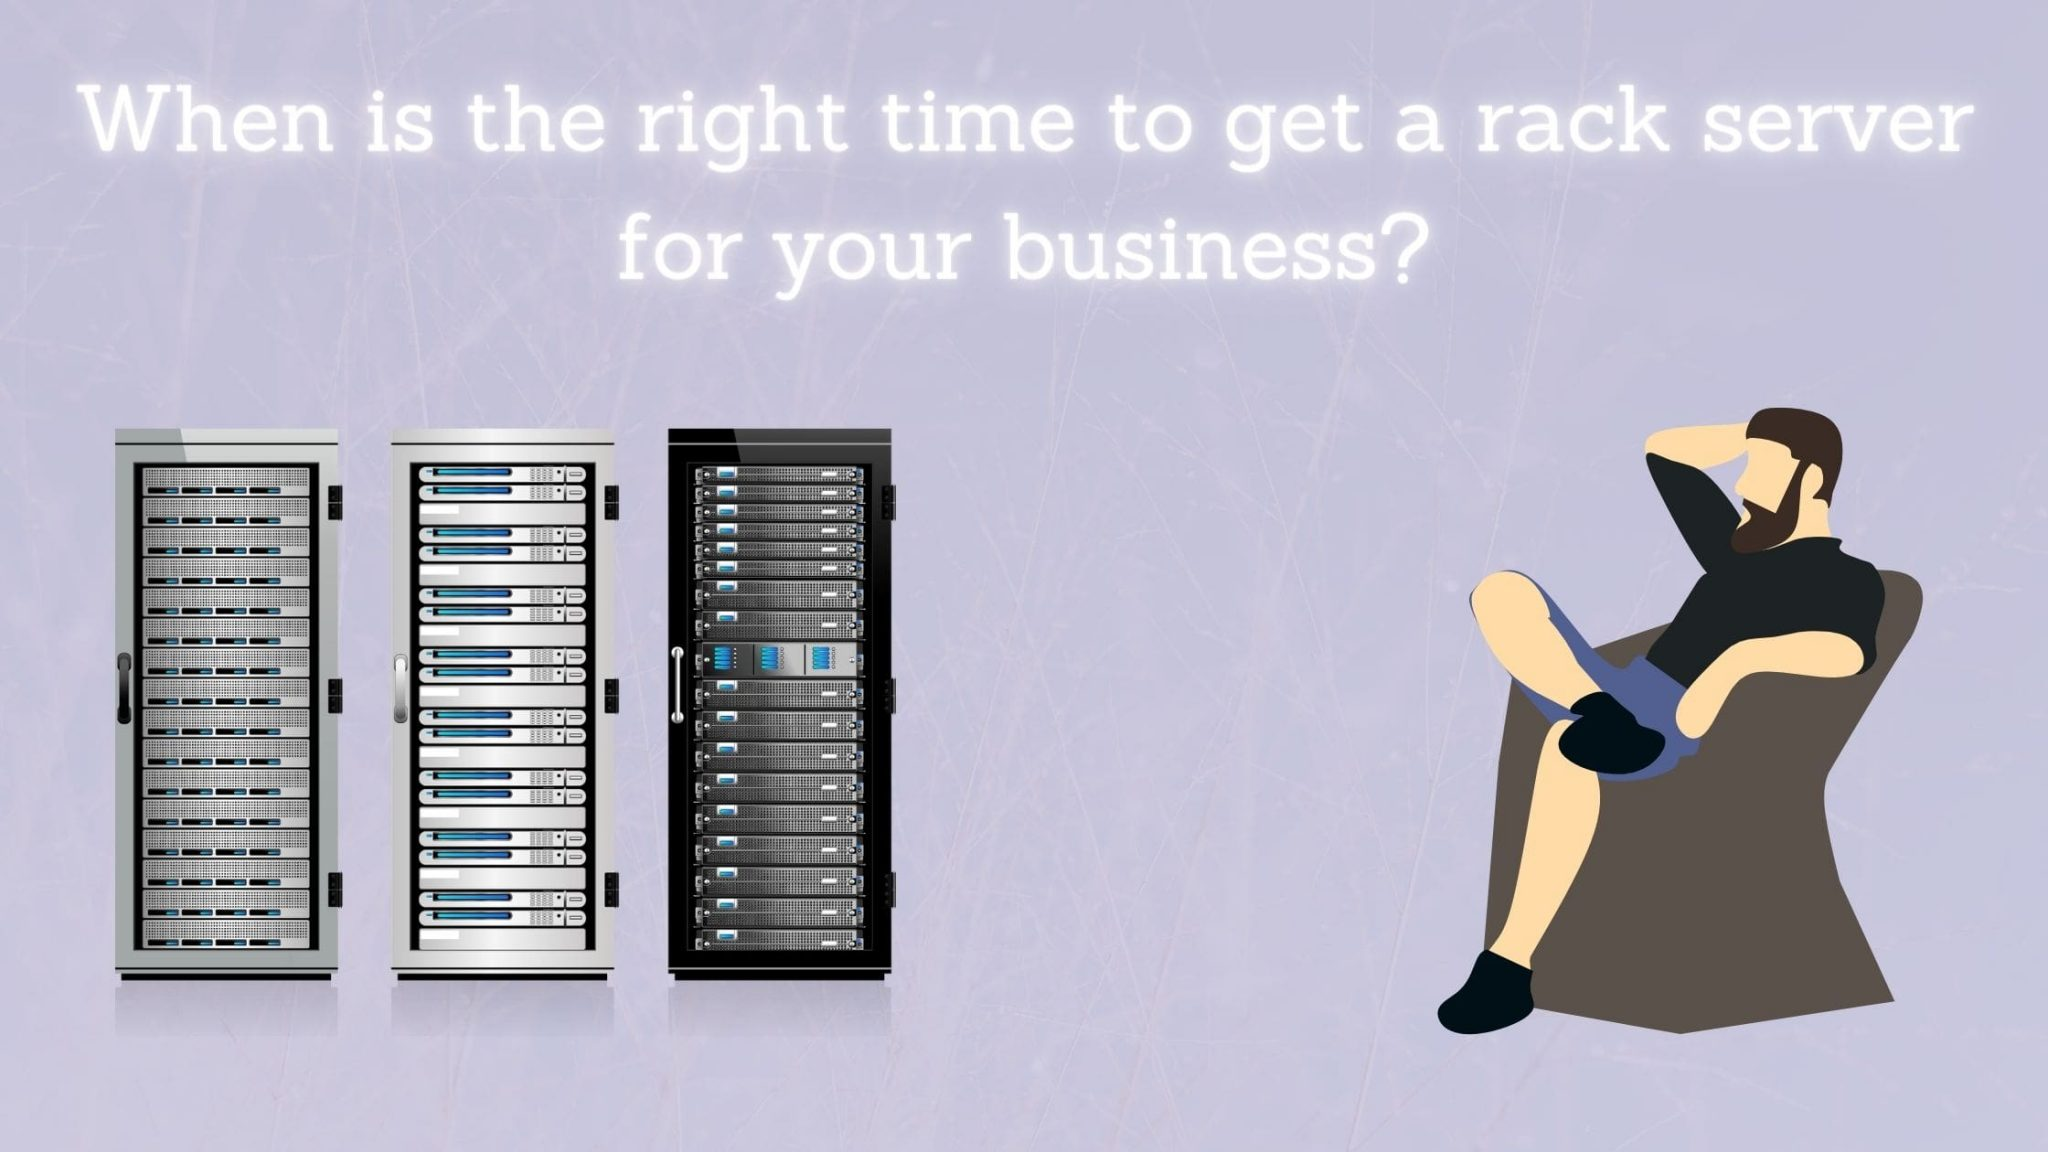 When is the right time to get a rack server for your business?